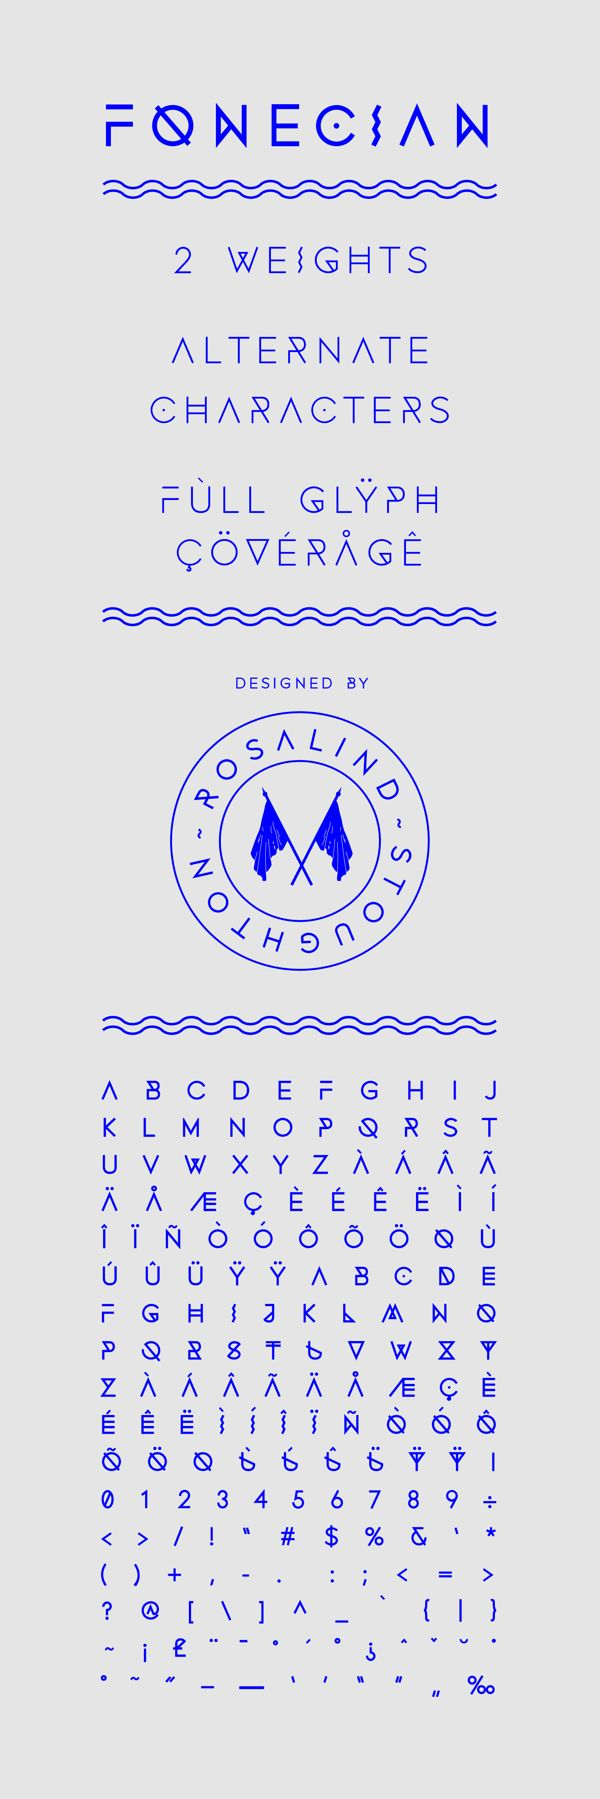 Fonecian Typeface by Rosalind Stoughton